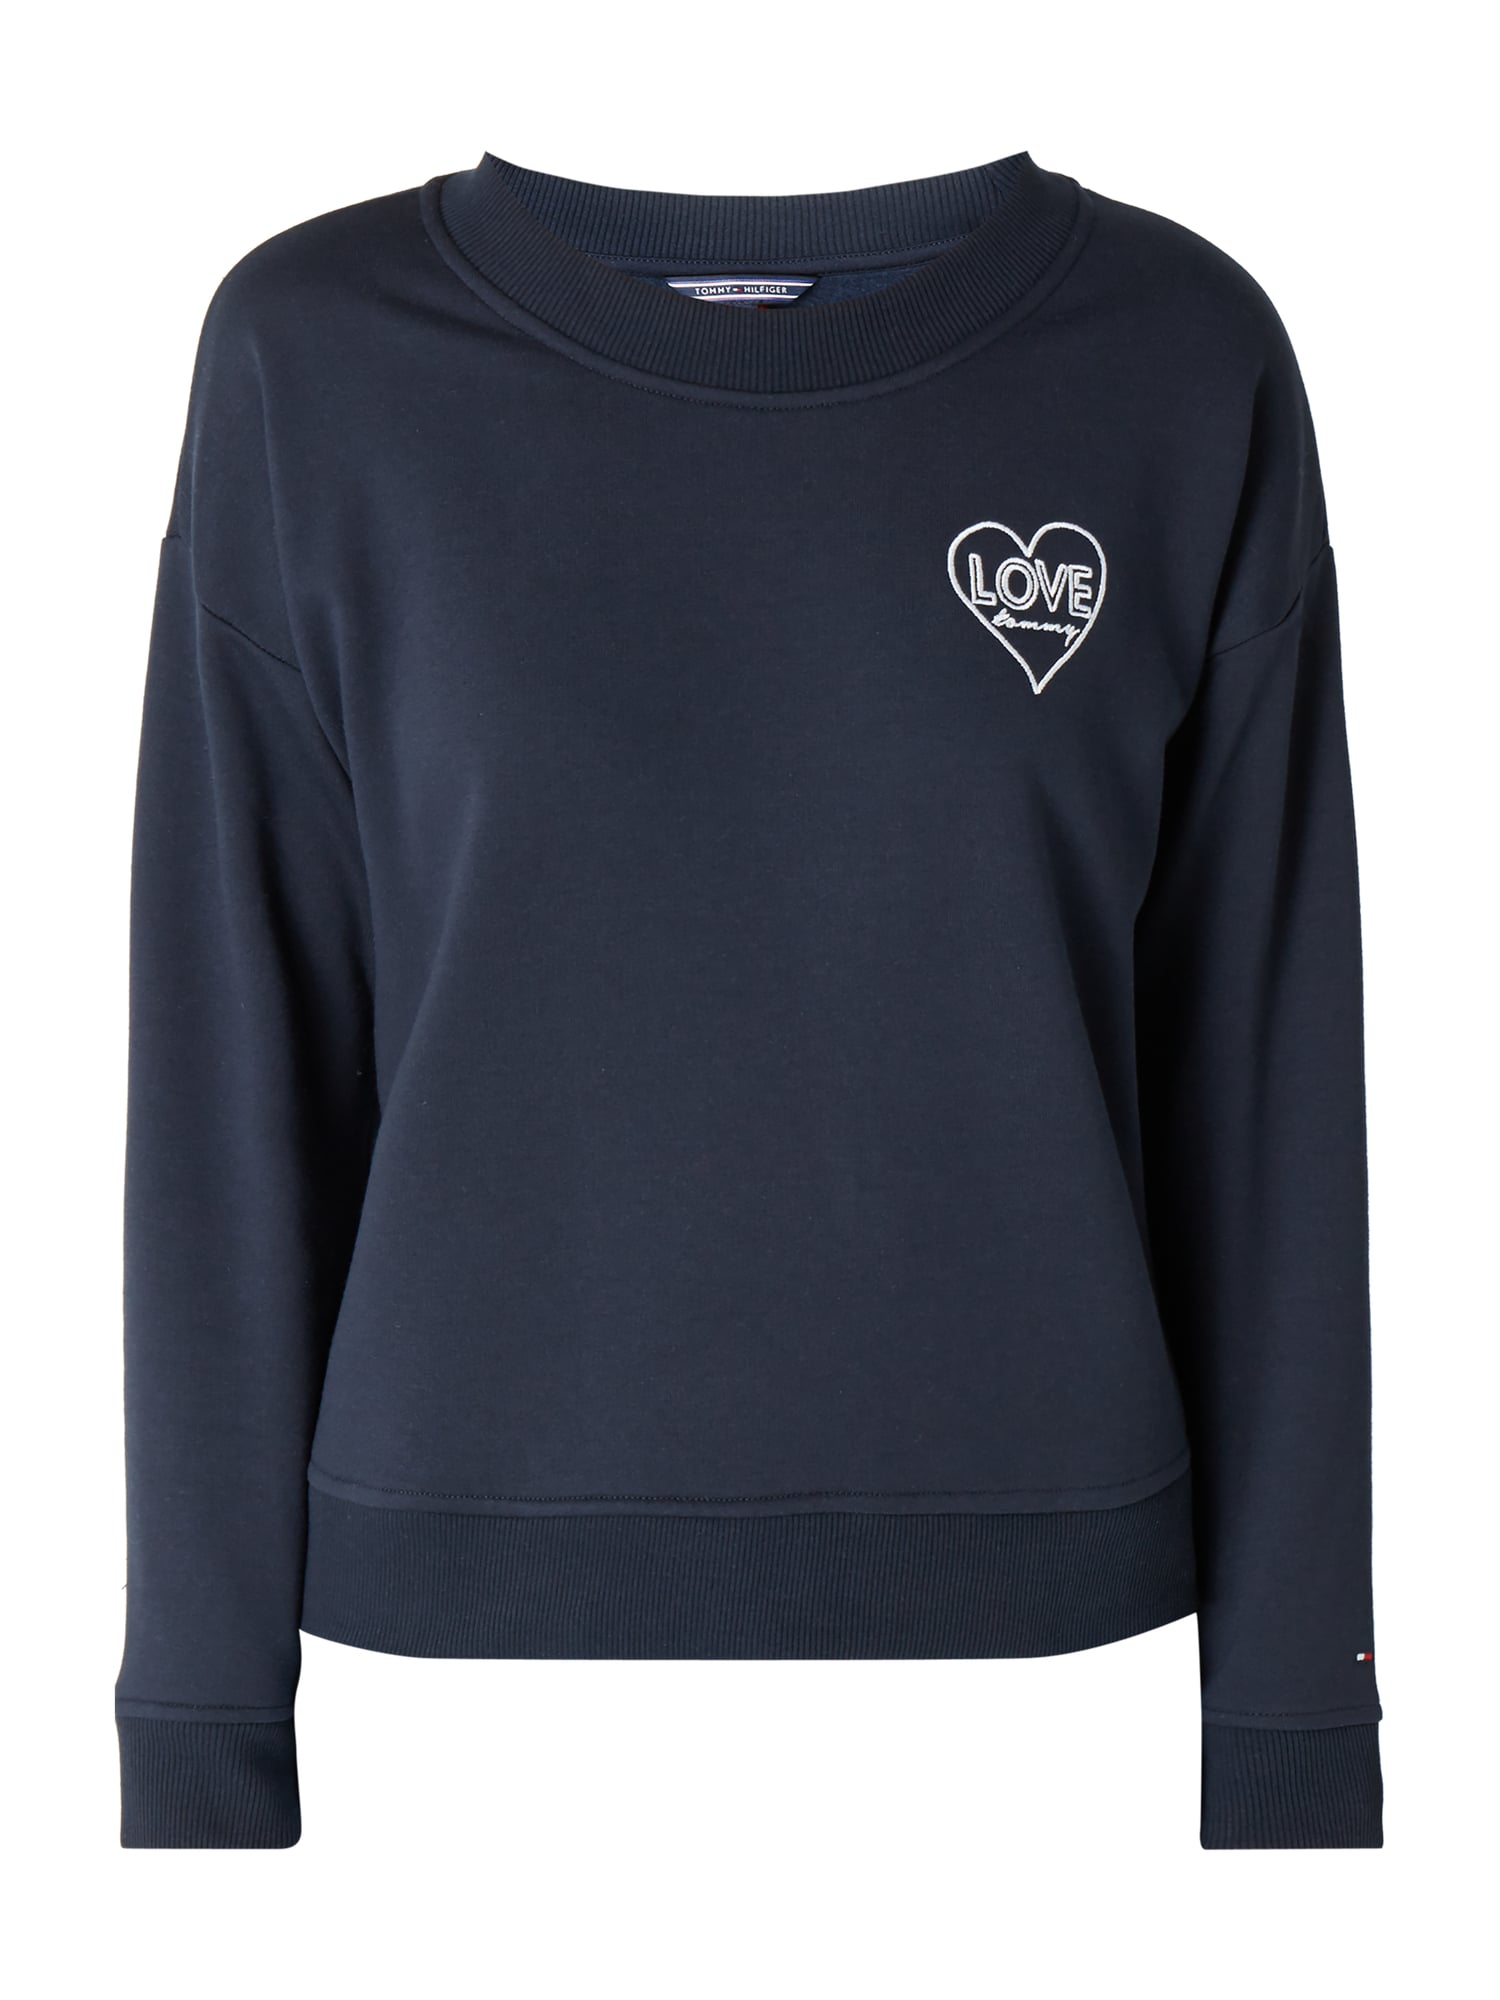 tommy hilfiger sweatshirt mit herz stickereien in blau. Black Bedroom Furniture Sets. Home Design Ideas